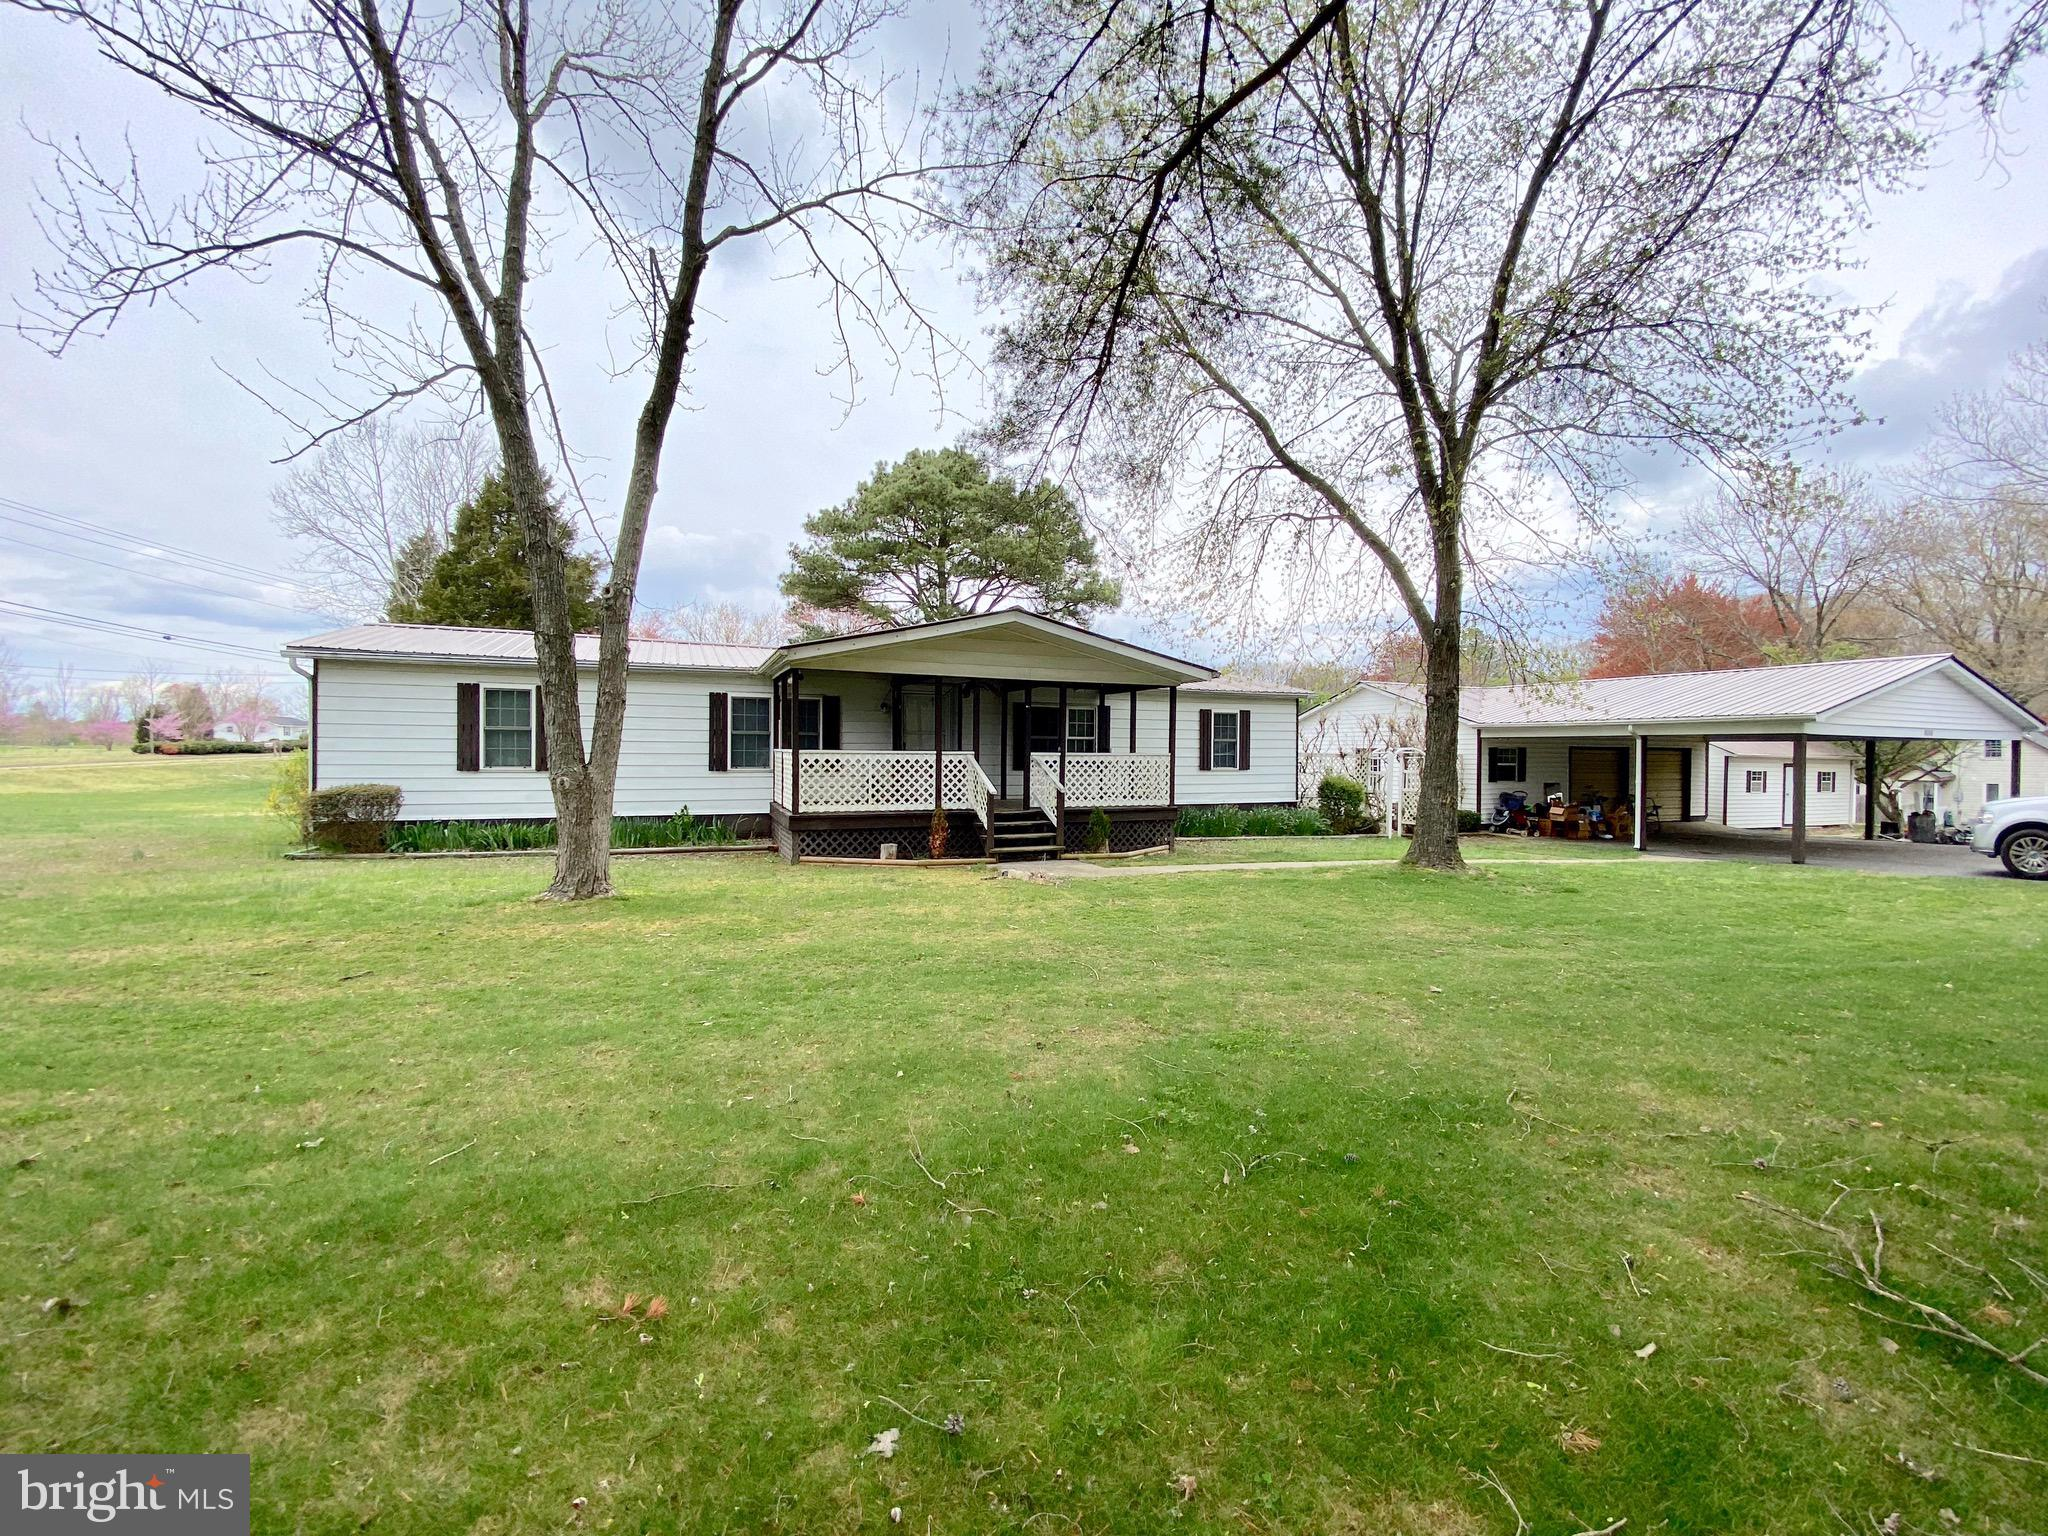 This very well-maintained home has a detached two car garage and a large storage shed that will conv